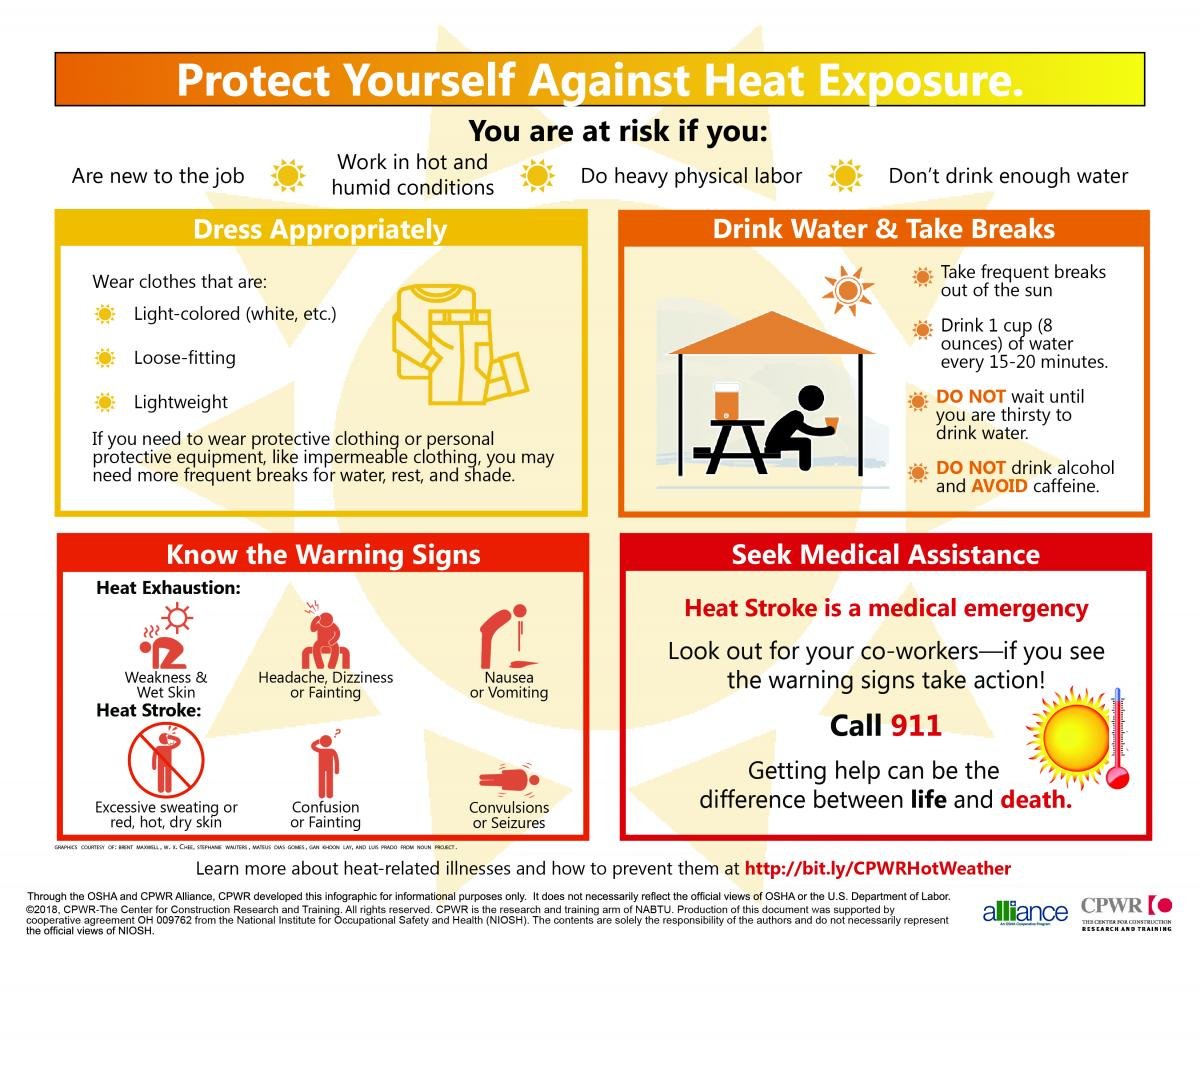 Protect Yourself Against Heat Exposure